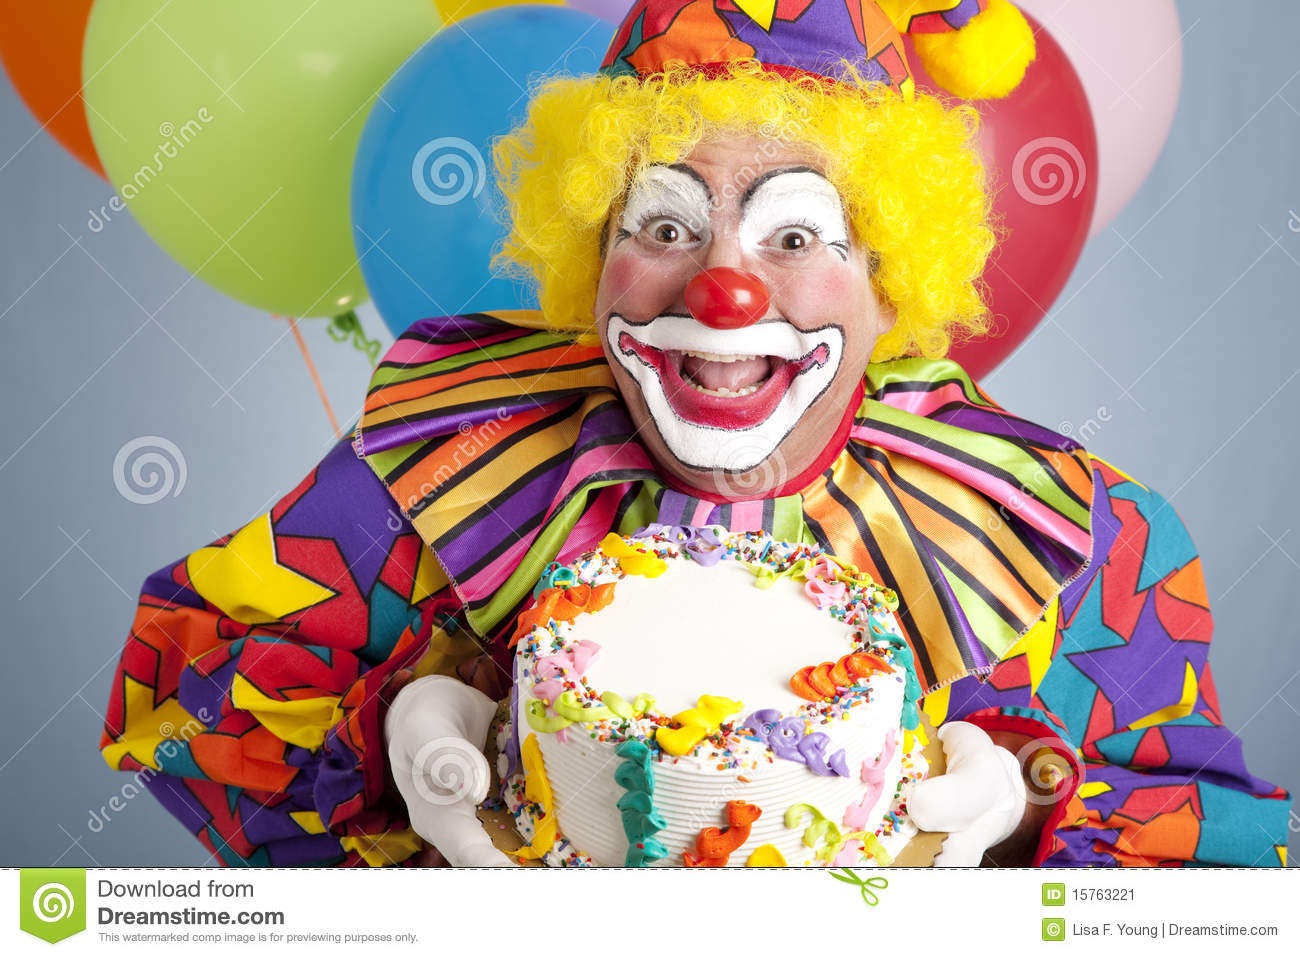 Birthday Clown With Blank Cake Stock Image Image of frosting